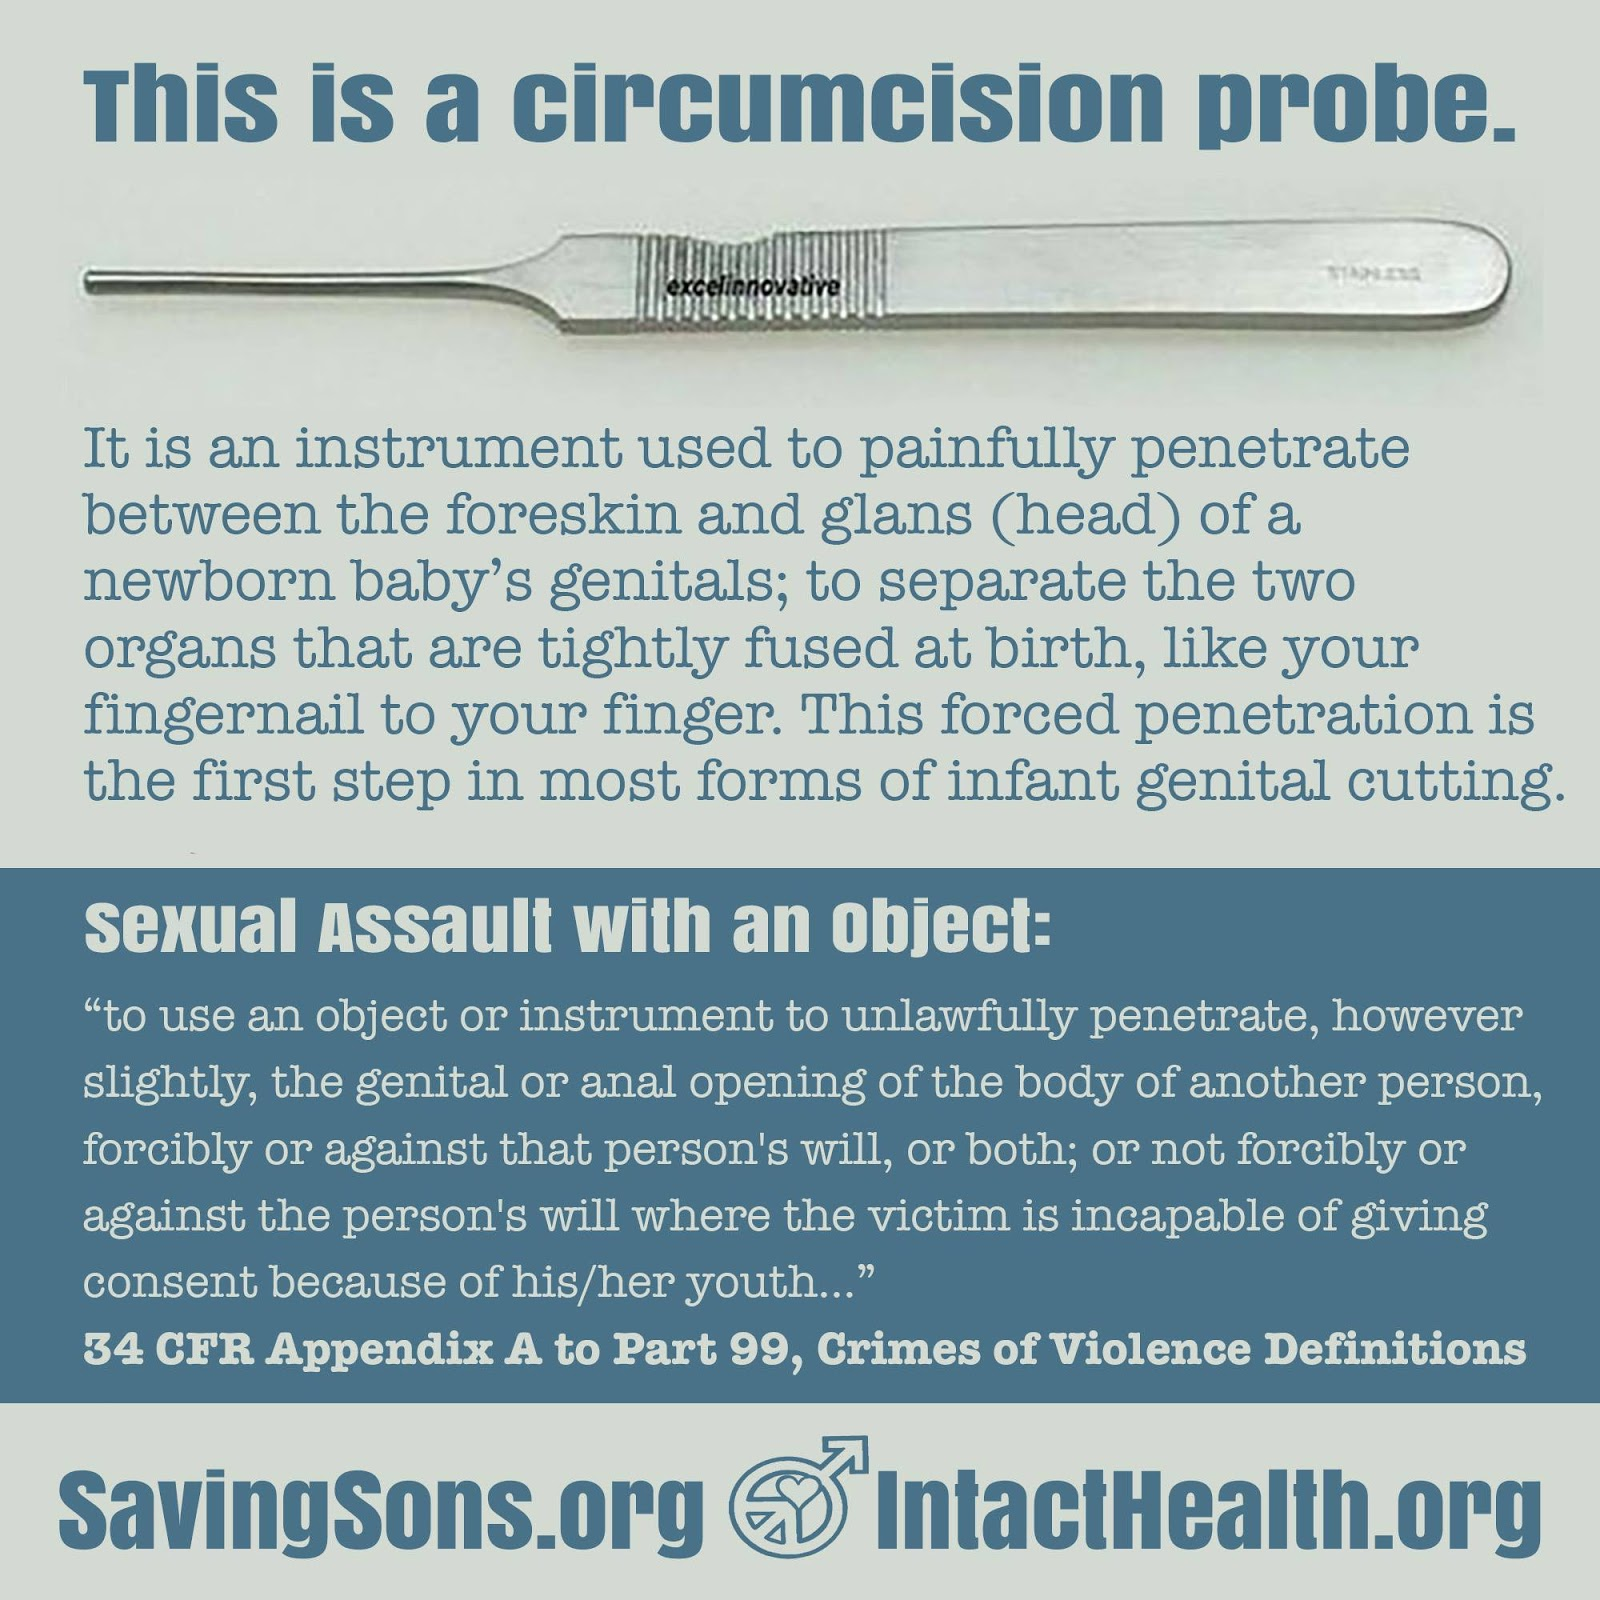 Saving Our Sons: Penile Probing for Circumcision